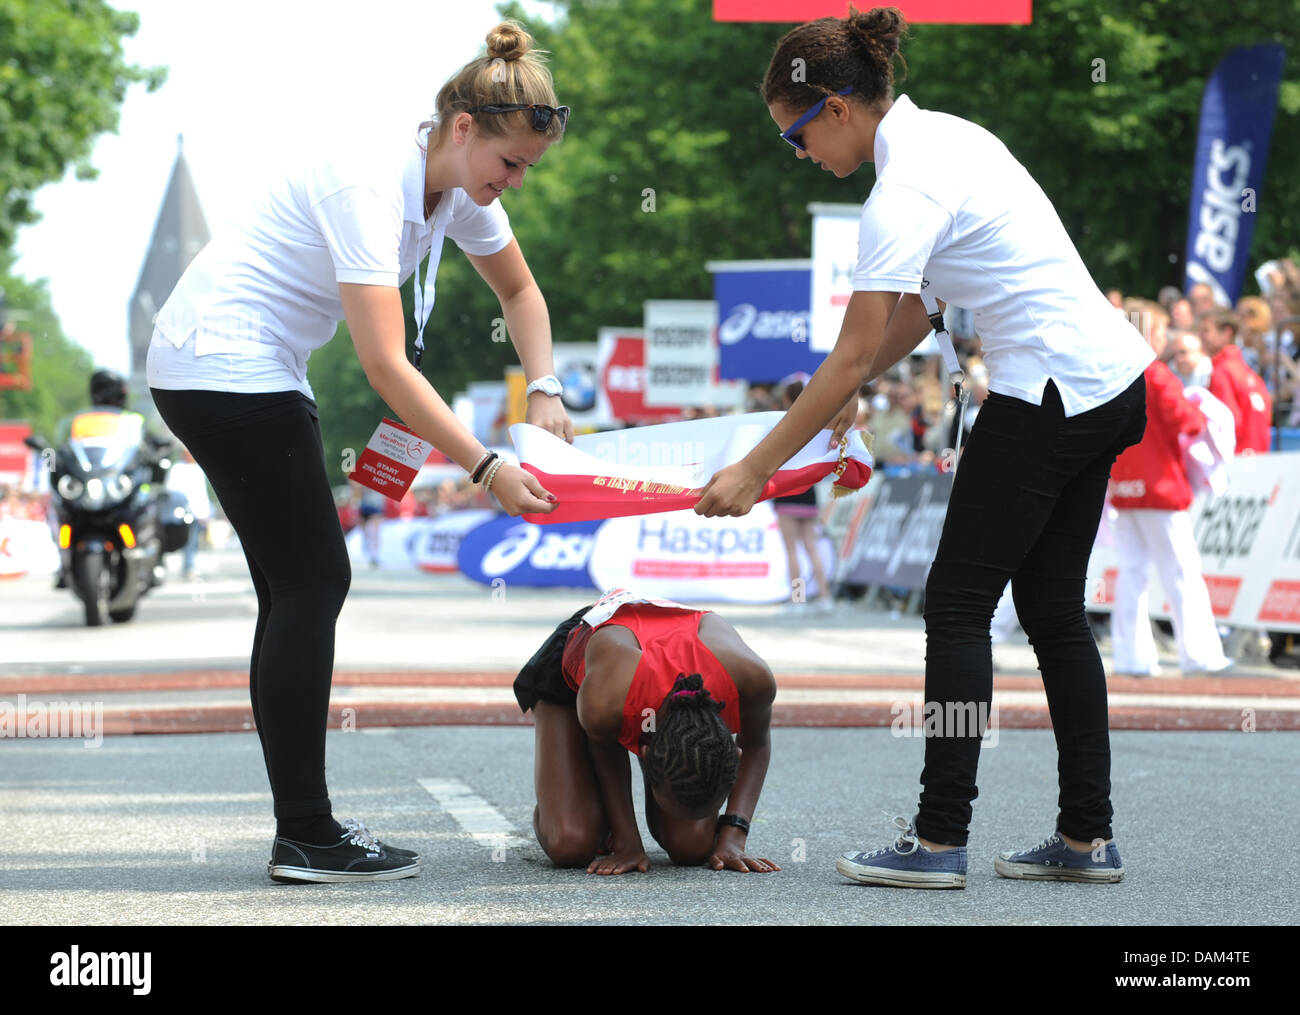 Ethiopian Fatuma Sado Dergo (M) kneels after her win in the Hamburg Marathon in Hamburg, Germany, 22 May 2011. More Stock Photo